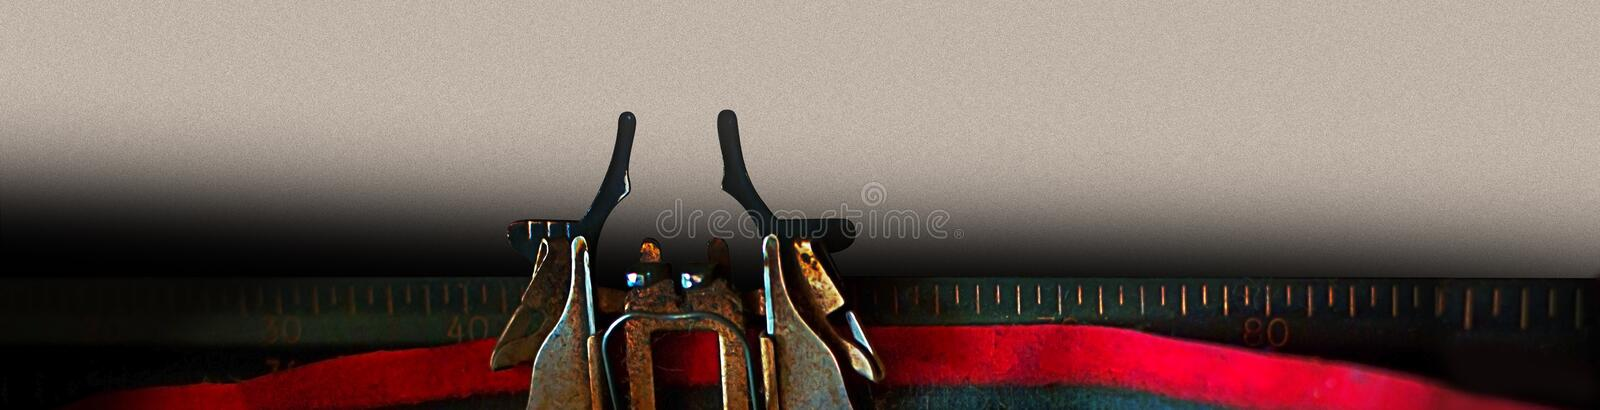 Typewriter banner text message design concept - What is your story royalty free stock photography